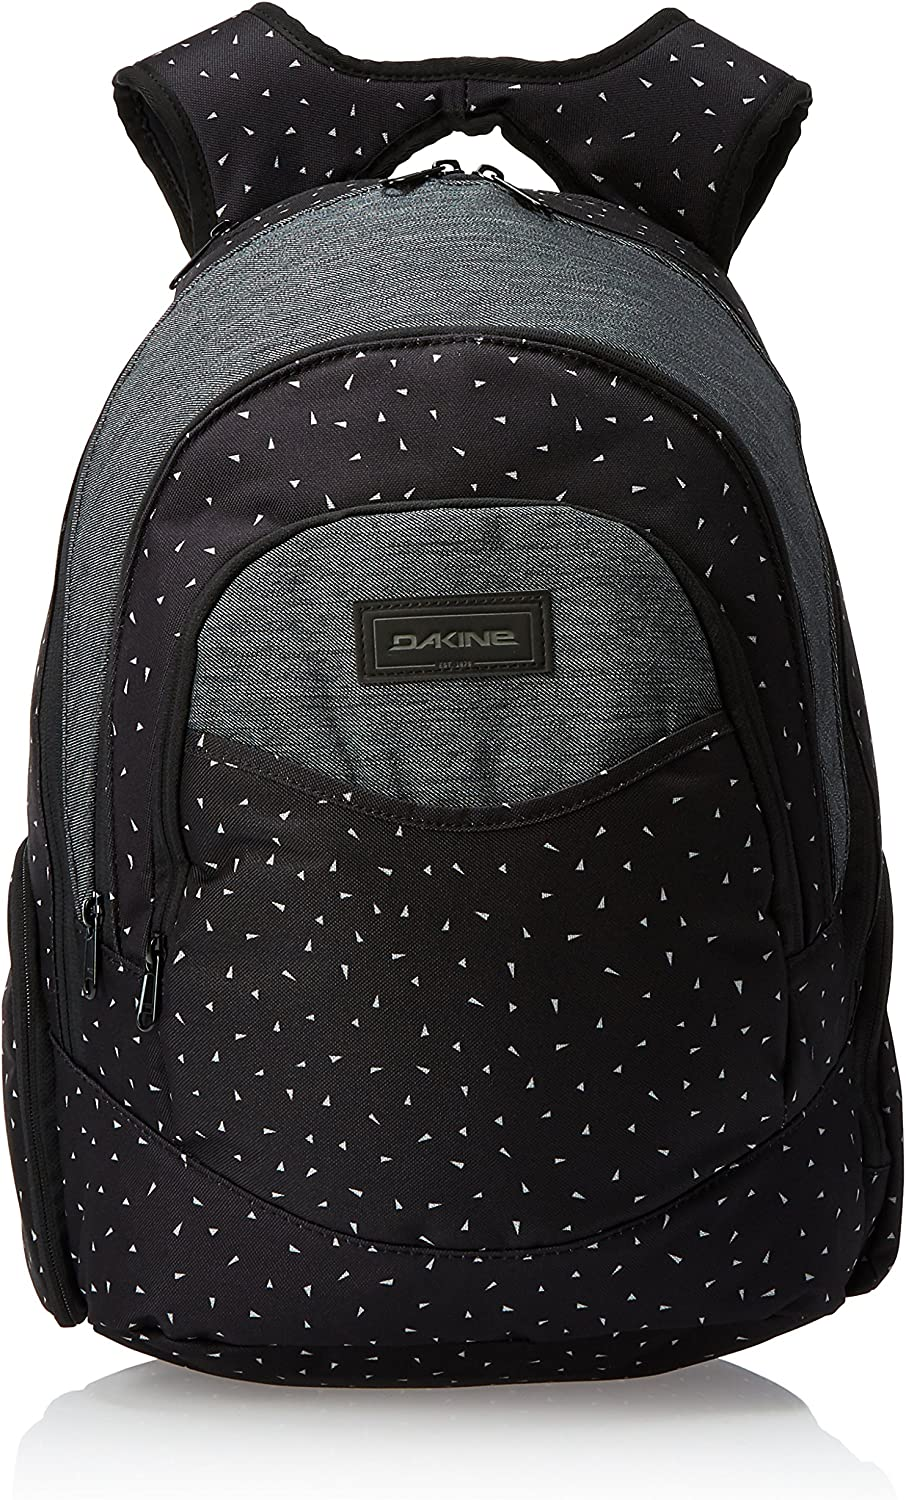 "Dakine – Prom 25L Woman's Backpack – Padded Laptop Storage – Insulated Cooler Pocket – Durable Construction – 18"" x 12"" x 9"""